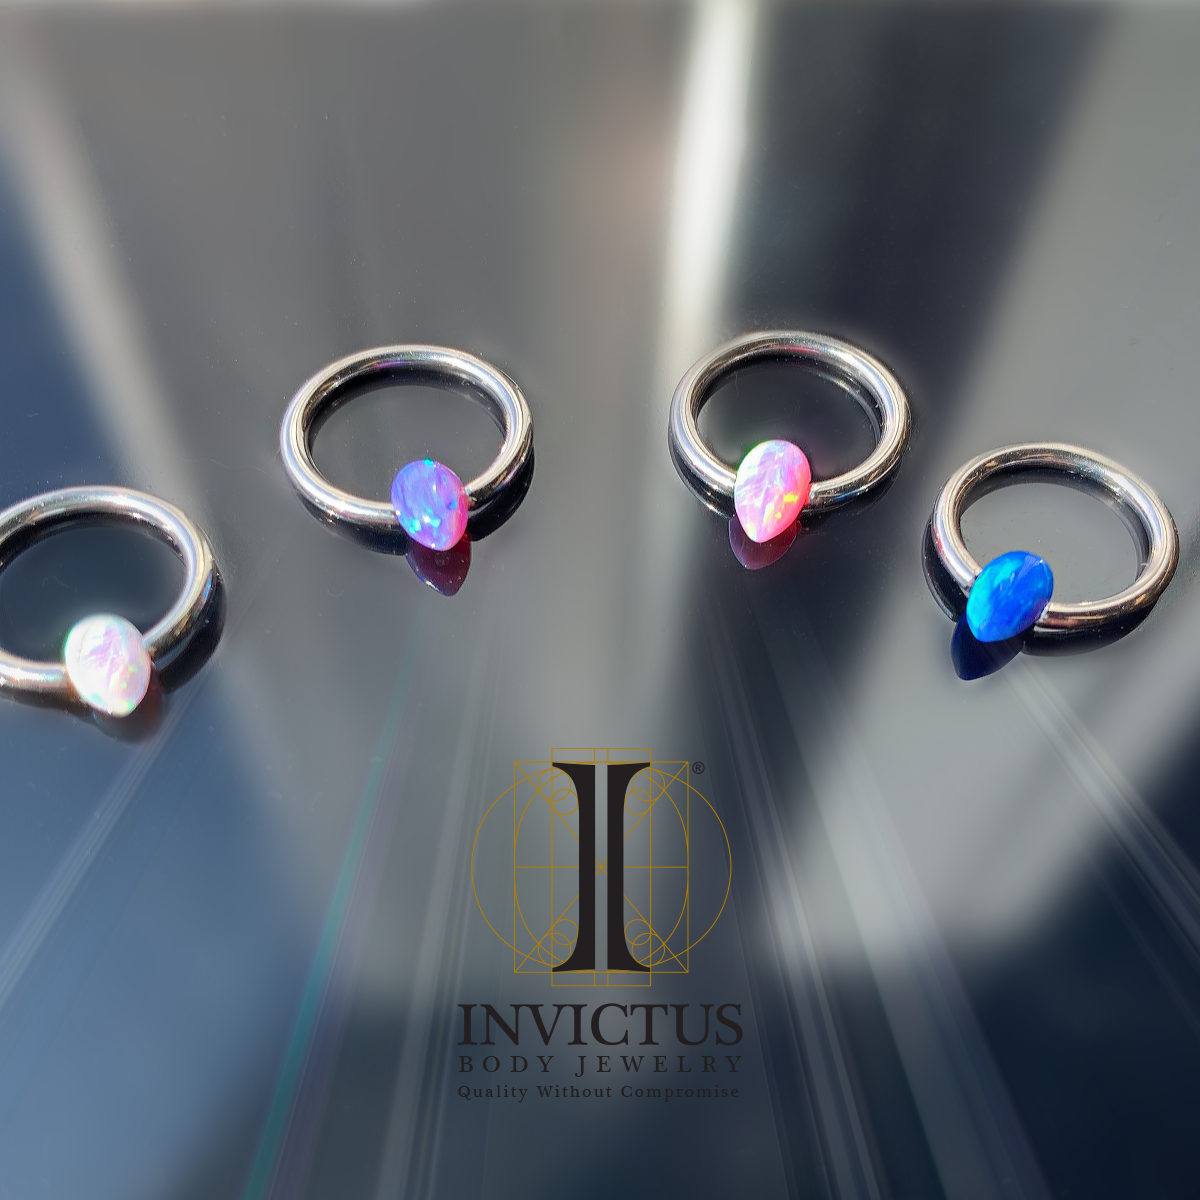 Available in white, lavender, pink, and blue - these are an exciting change to the traditional captive bead look.  . . . . #invictusjewelry #invictus #invictusbodyjewelry #jewelry #pierced #piercings #peoplewithpiercings #pierced #titanium #titaniumjewerly #gorgeous #14kgold #14kgoldjewerly #love #beautiful #threadlessjewelry #freshpiercing  #InvictusLove #interallythreadedjewelry #safepiercing #earrangement #bodyjewelry #sexy #sexypiercings #legitpiercings #safepiercing #follow #earproject